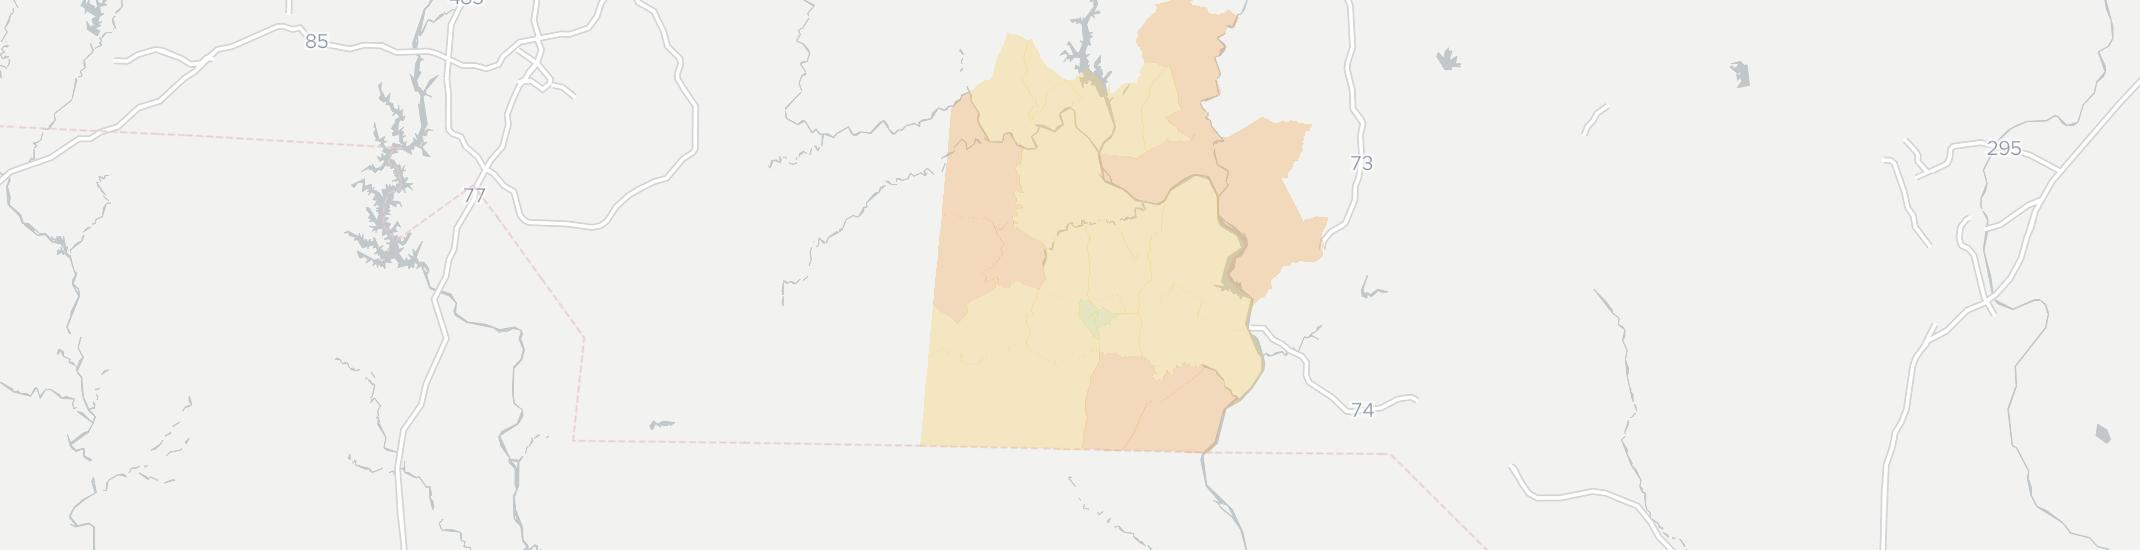 Wadesboro Internet Competition Map. Click for interactive map.